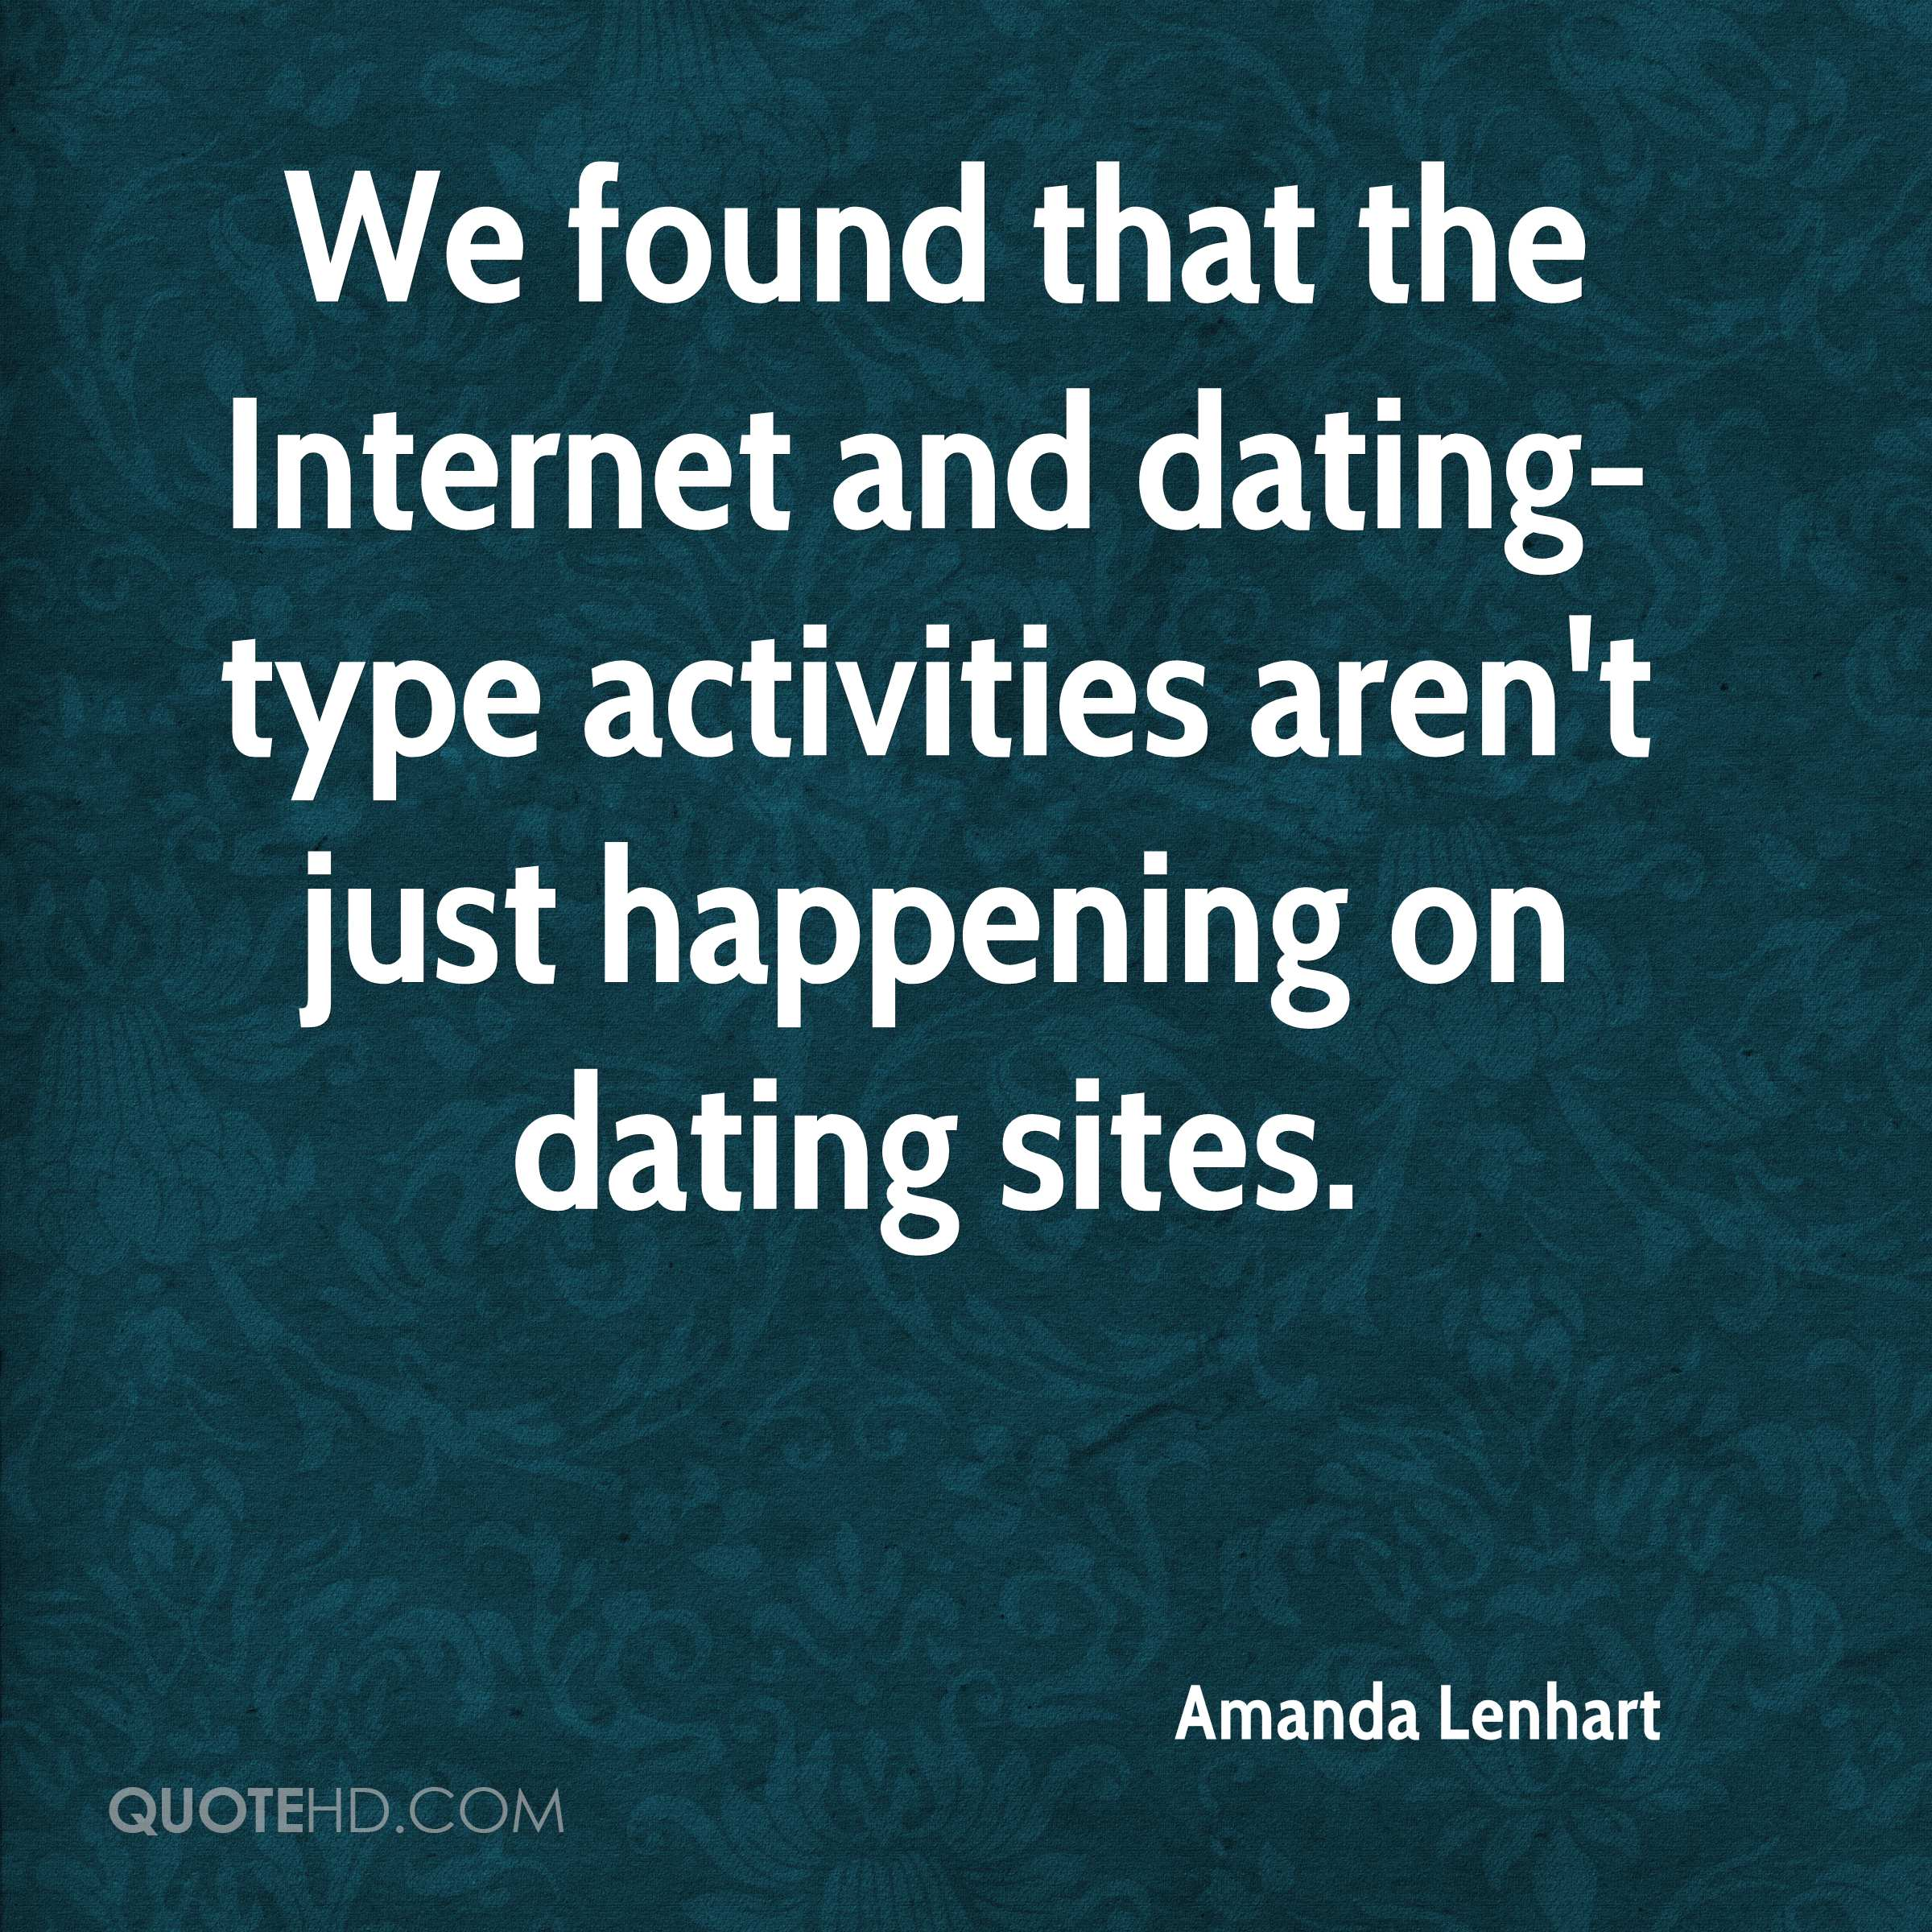 quotes dating sites